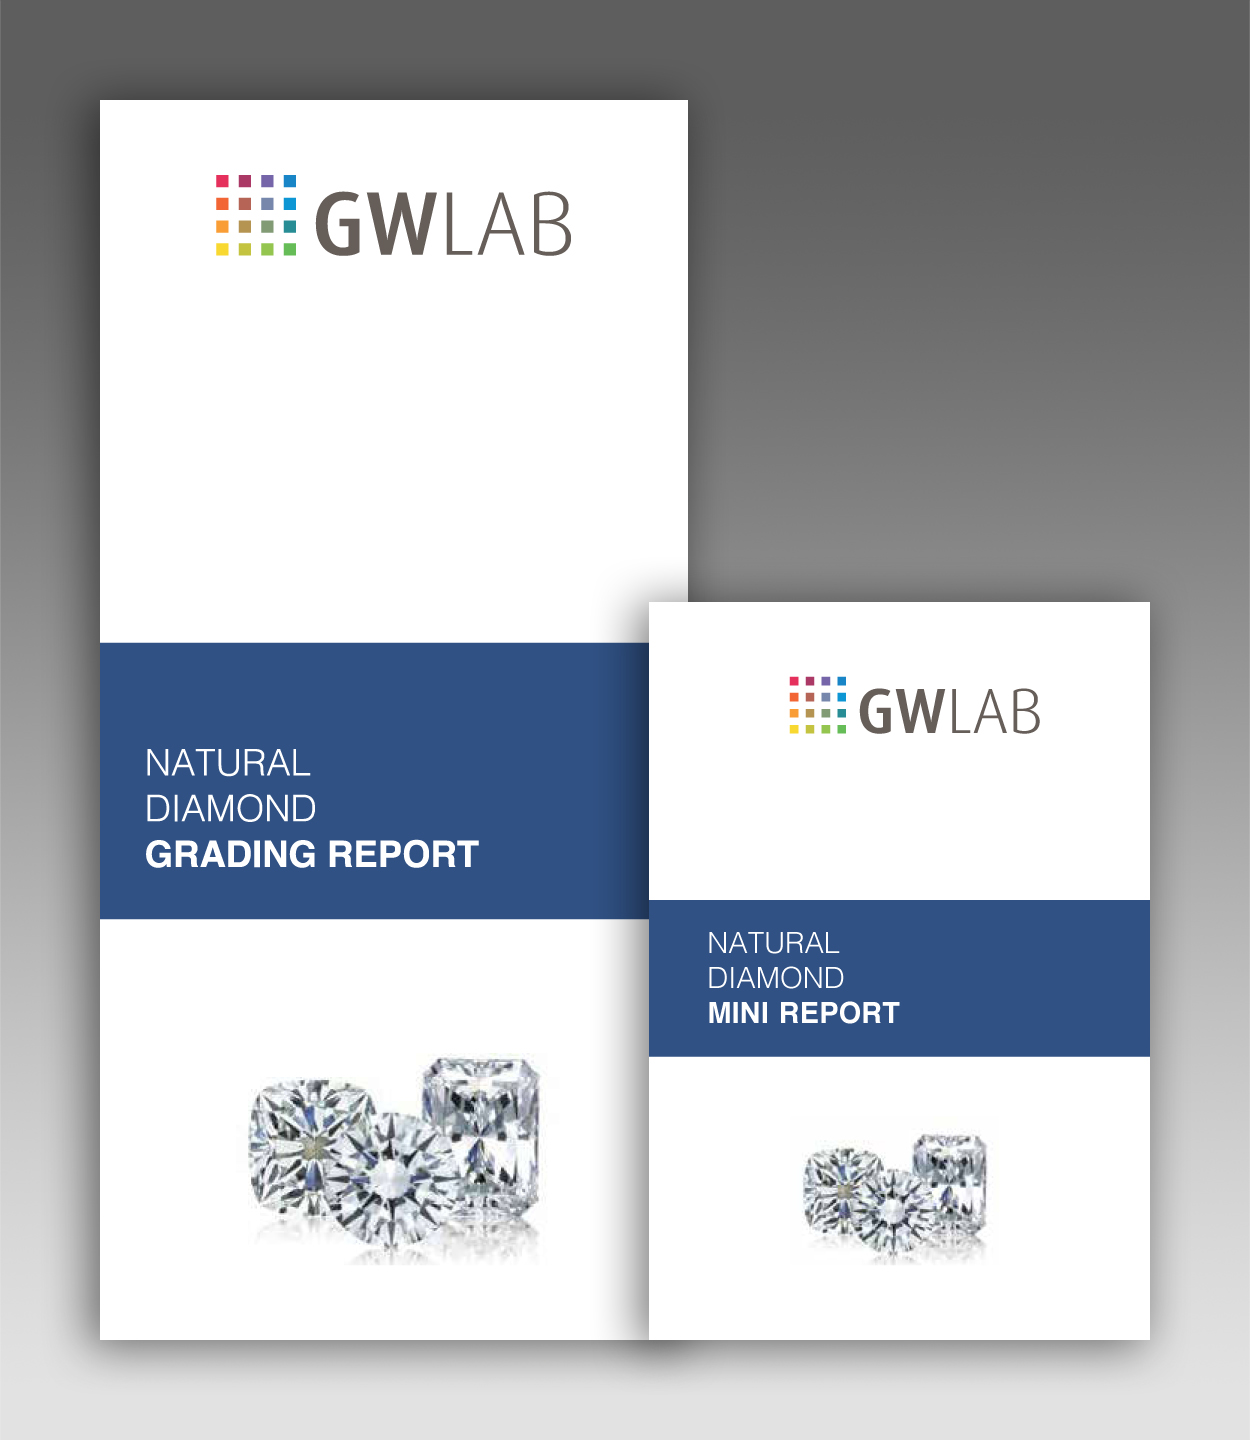 GWLAB Natural Diamond Grading Report - Outer Cover